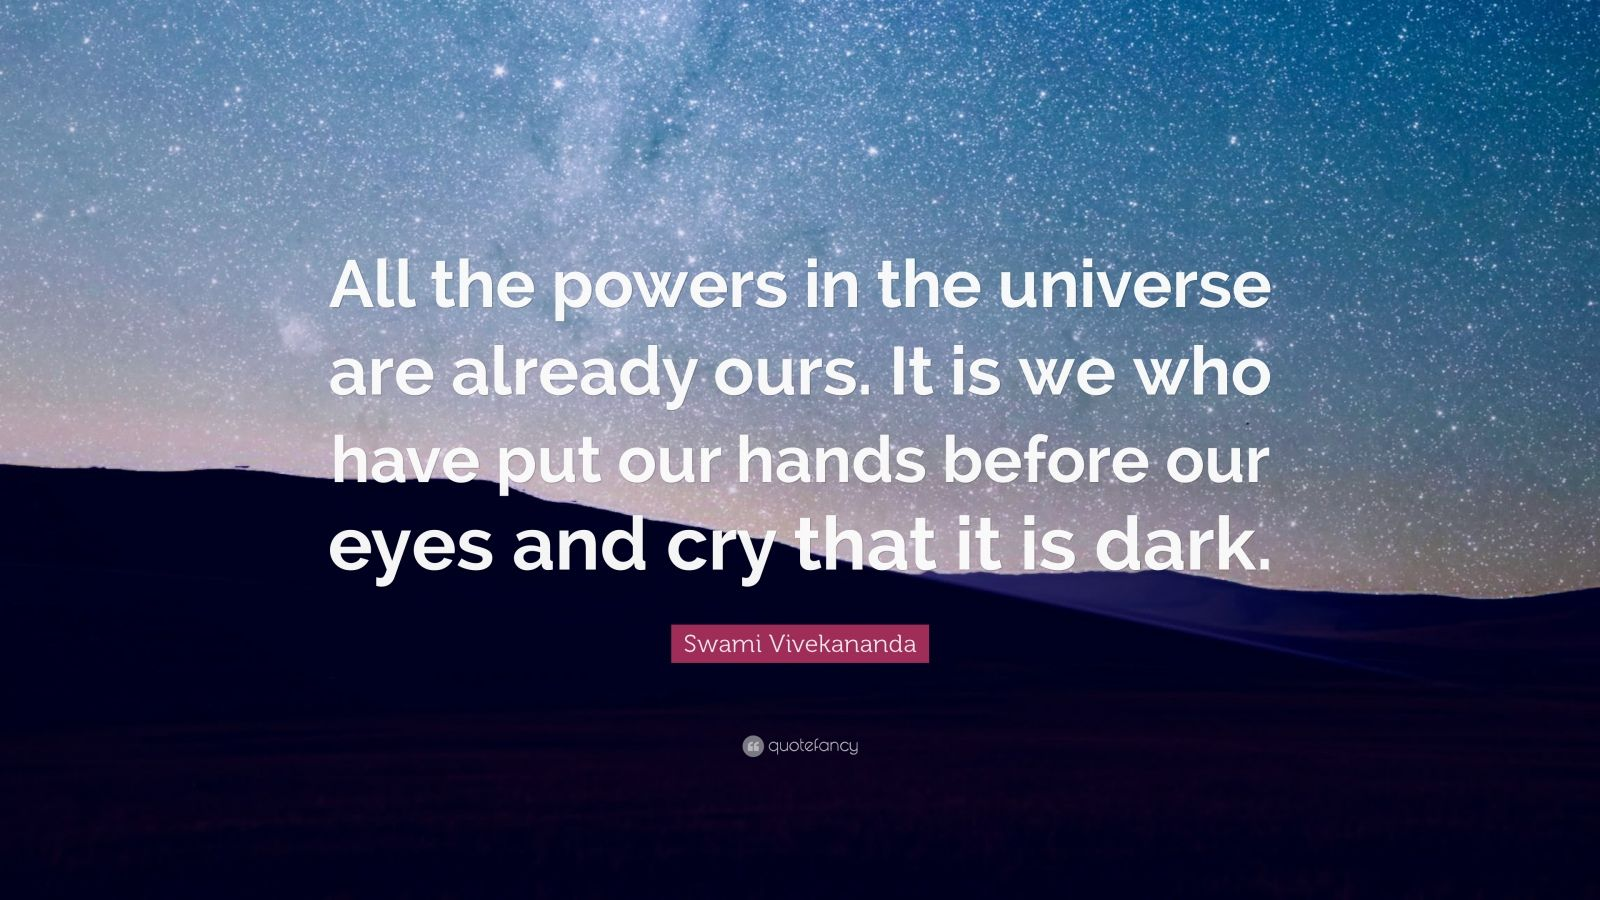 """Swami Vivekananda Quote: """"All the powers in the universe are already ours. It is we who have put our hands before our eyes and cry that it is dark."""""""